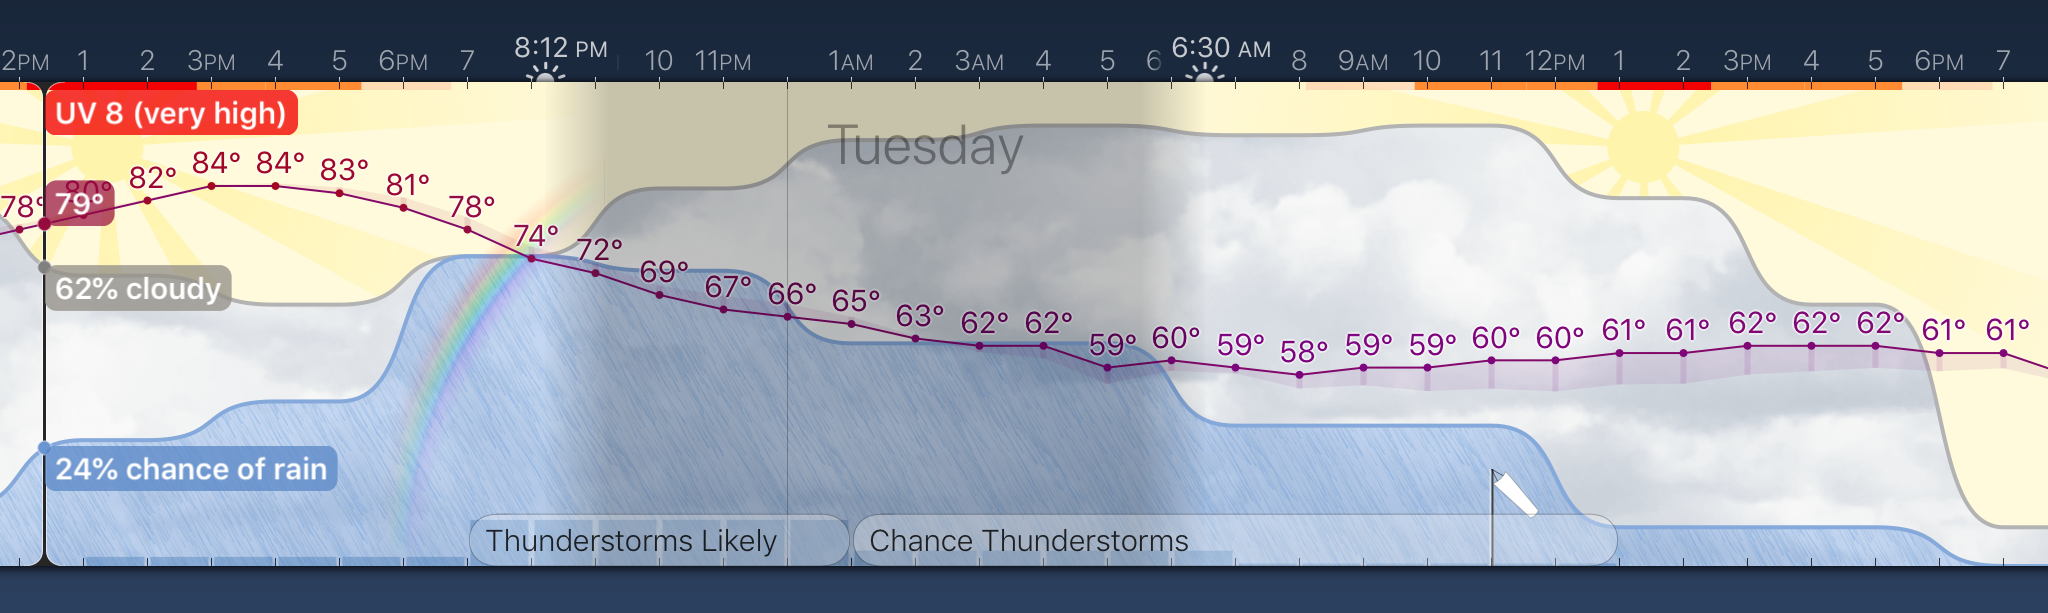 Weather Strip app for iPhone and iPad